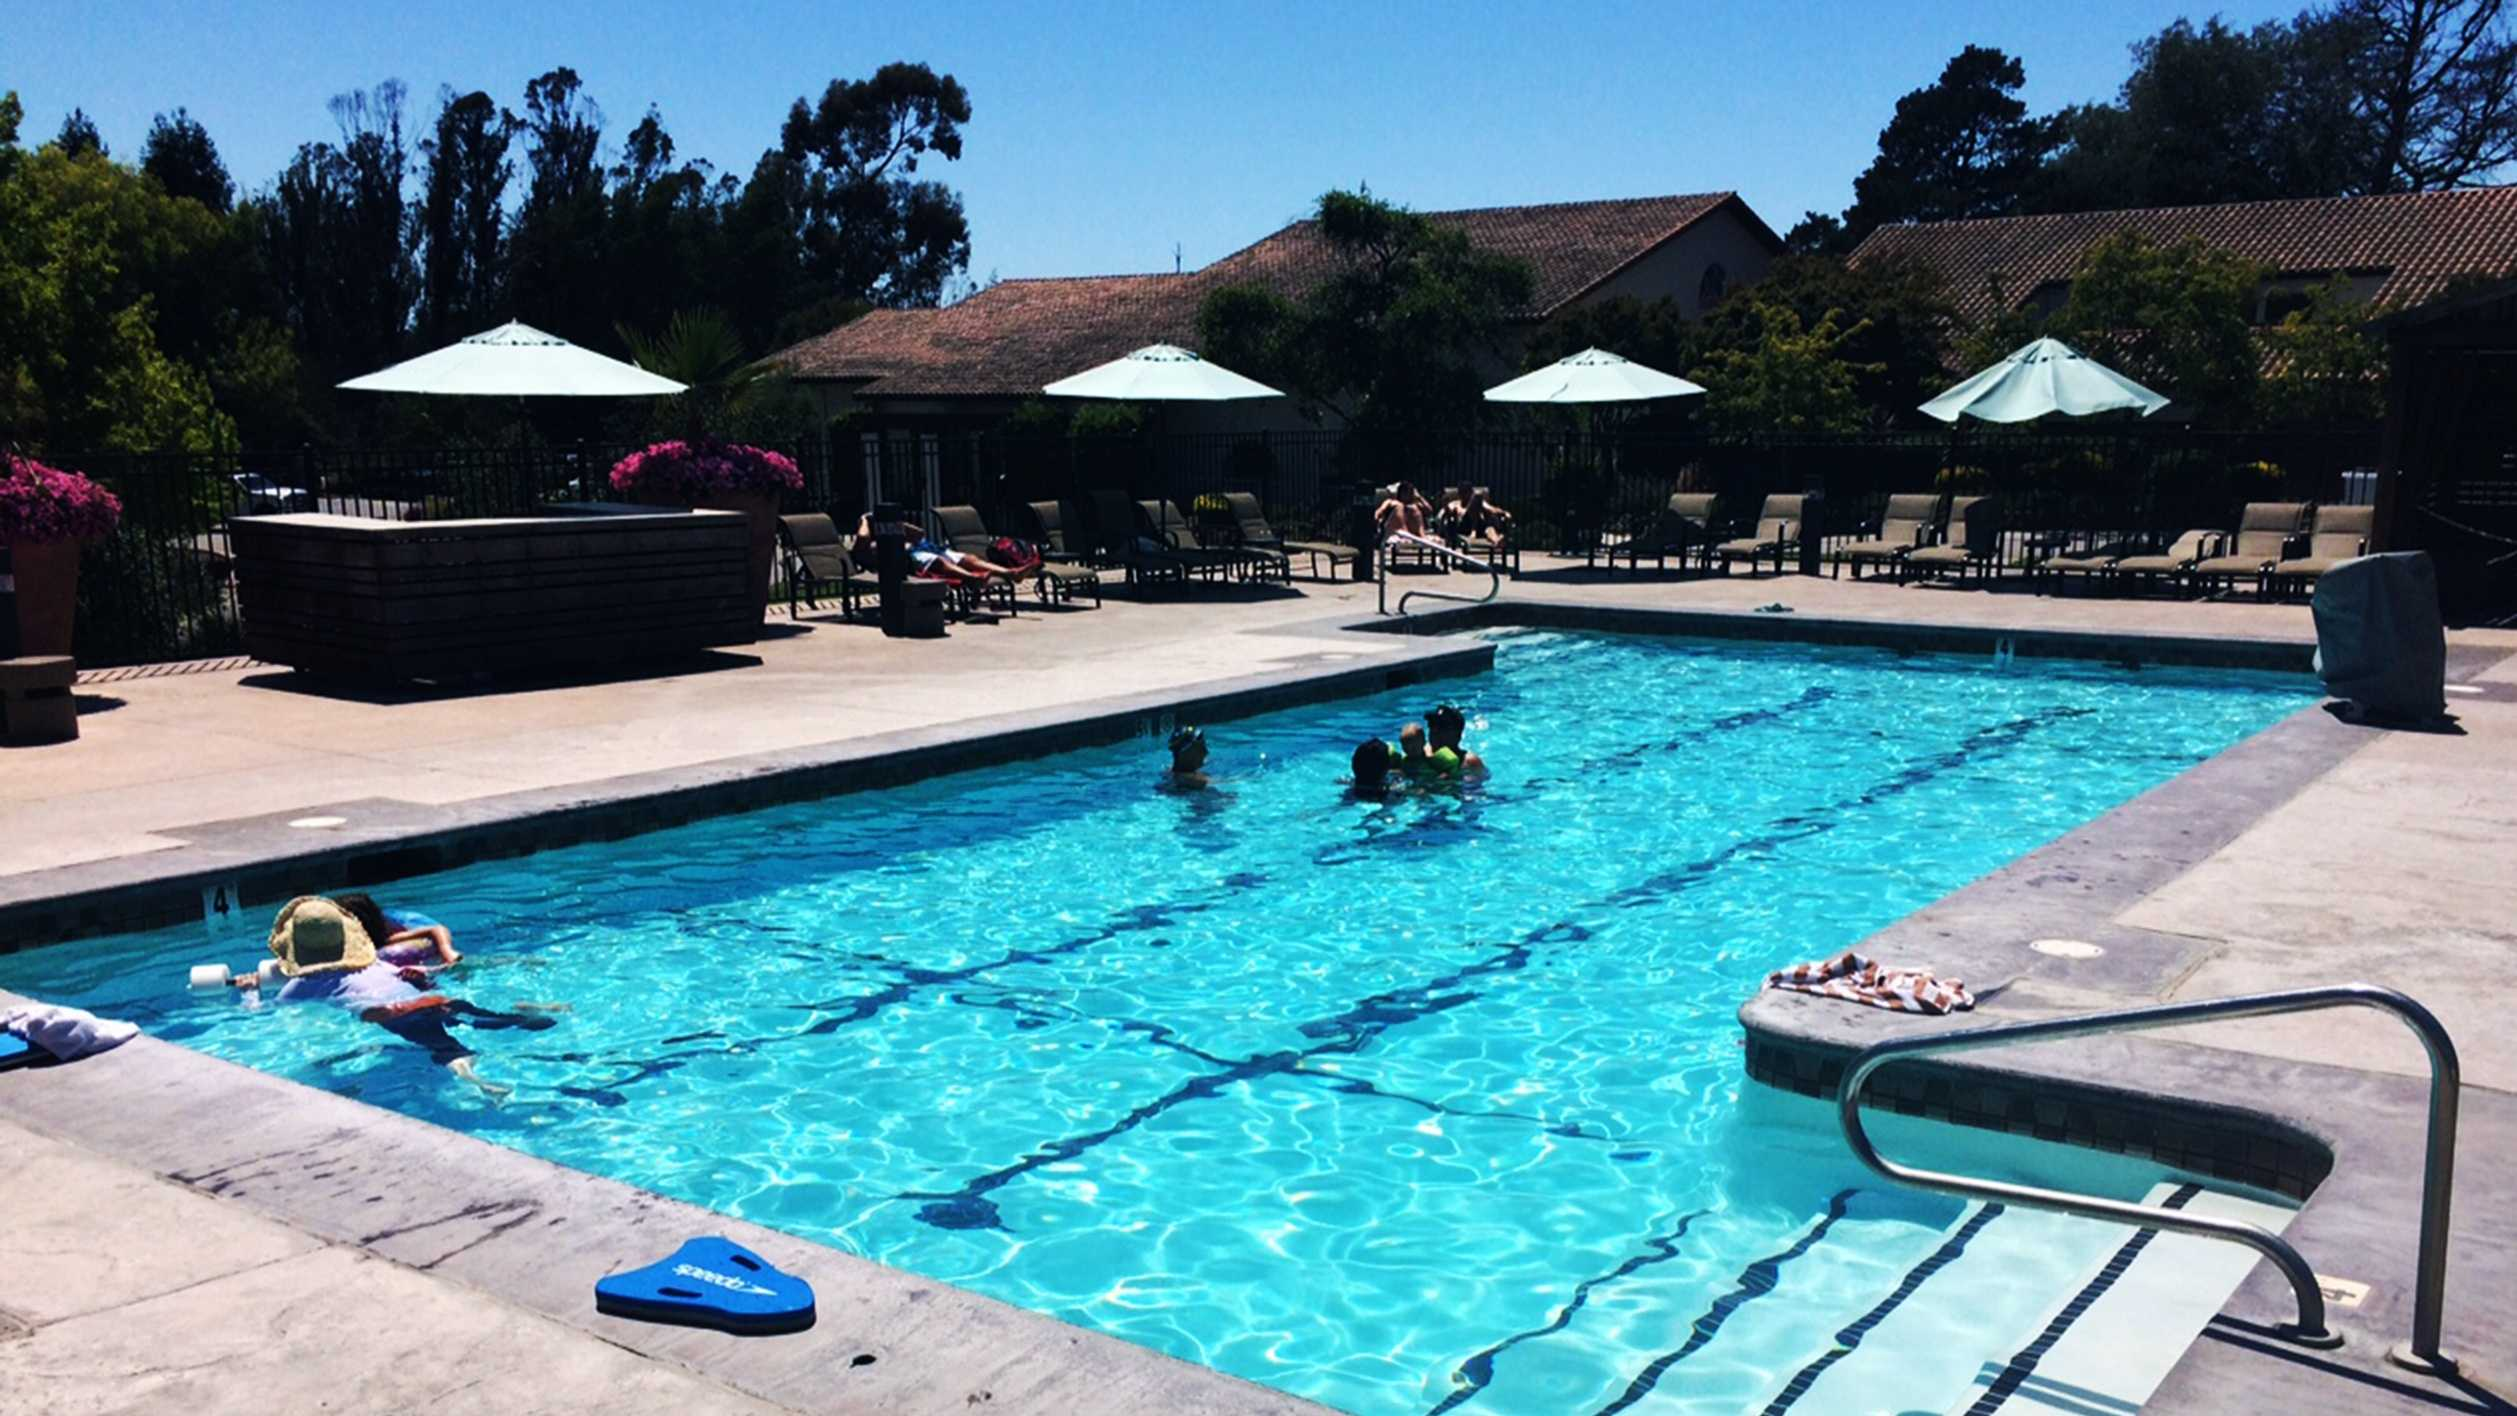 Chaminade Resort & Spa in Santa Cruz